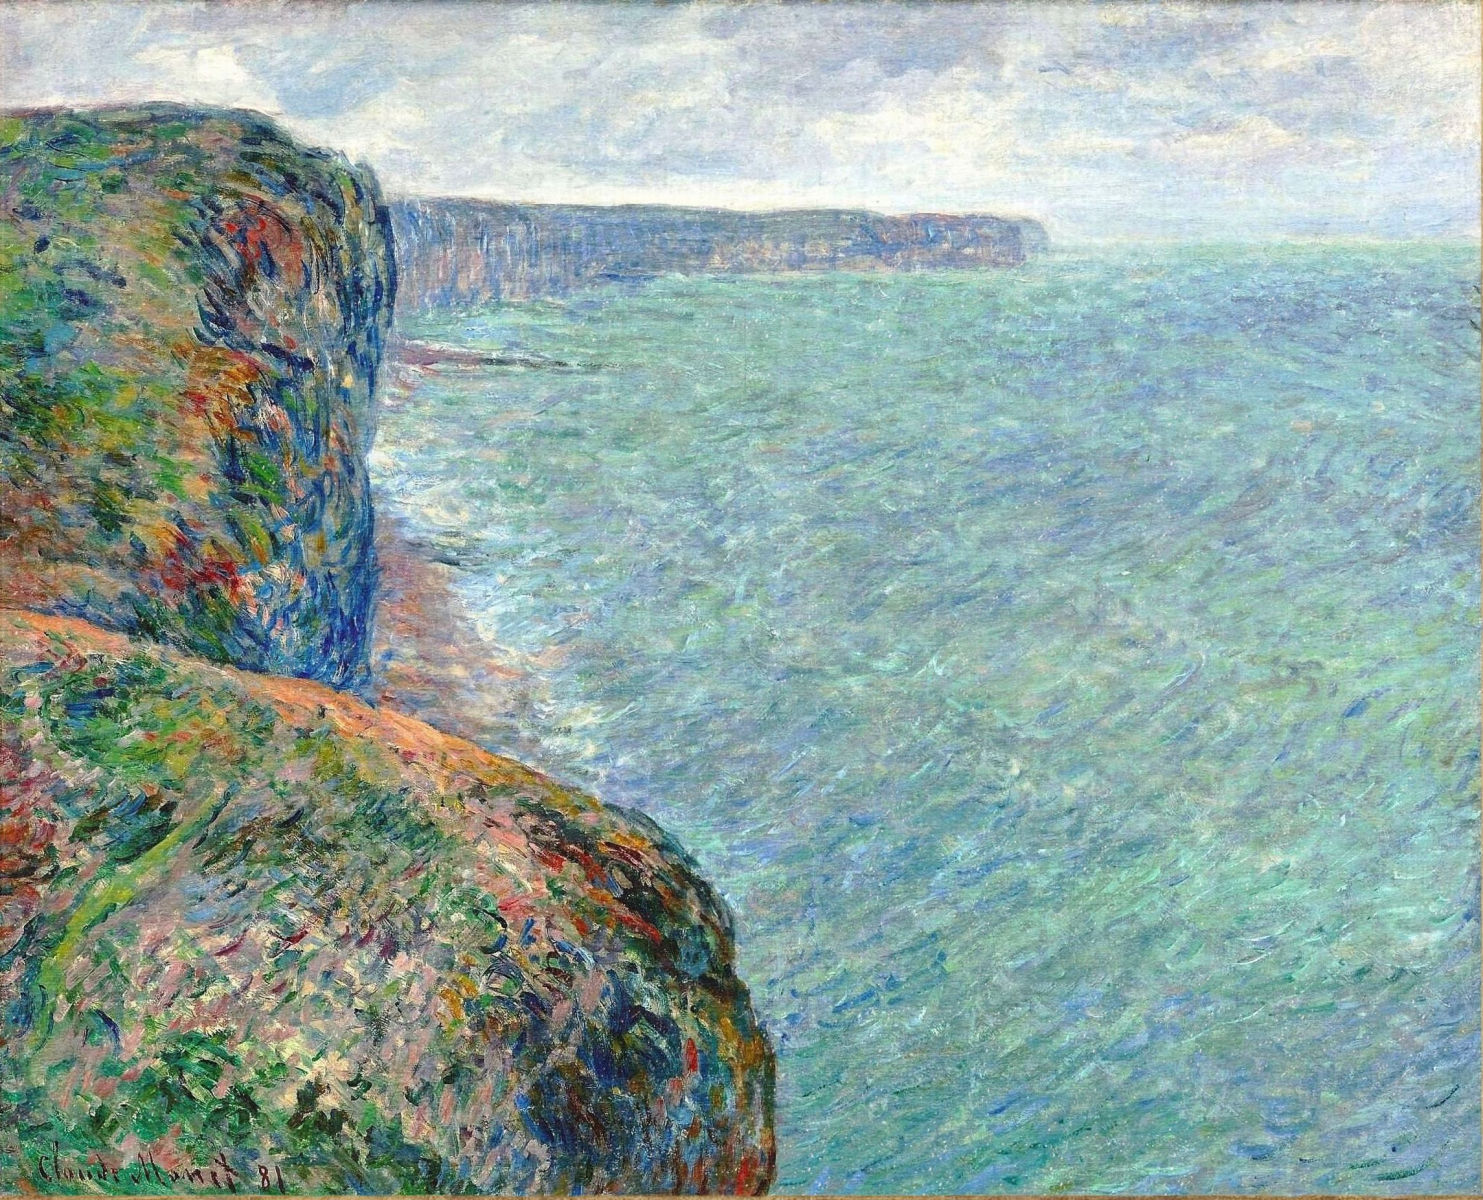 Claude Monet - The Sea Seen from the Cliffs of Fecamp 1881